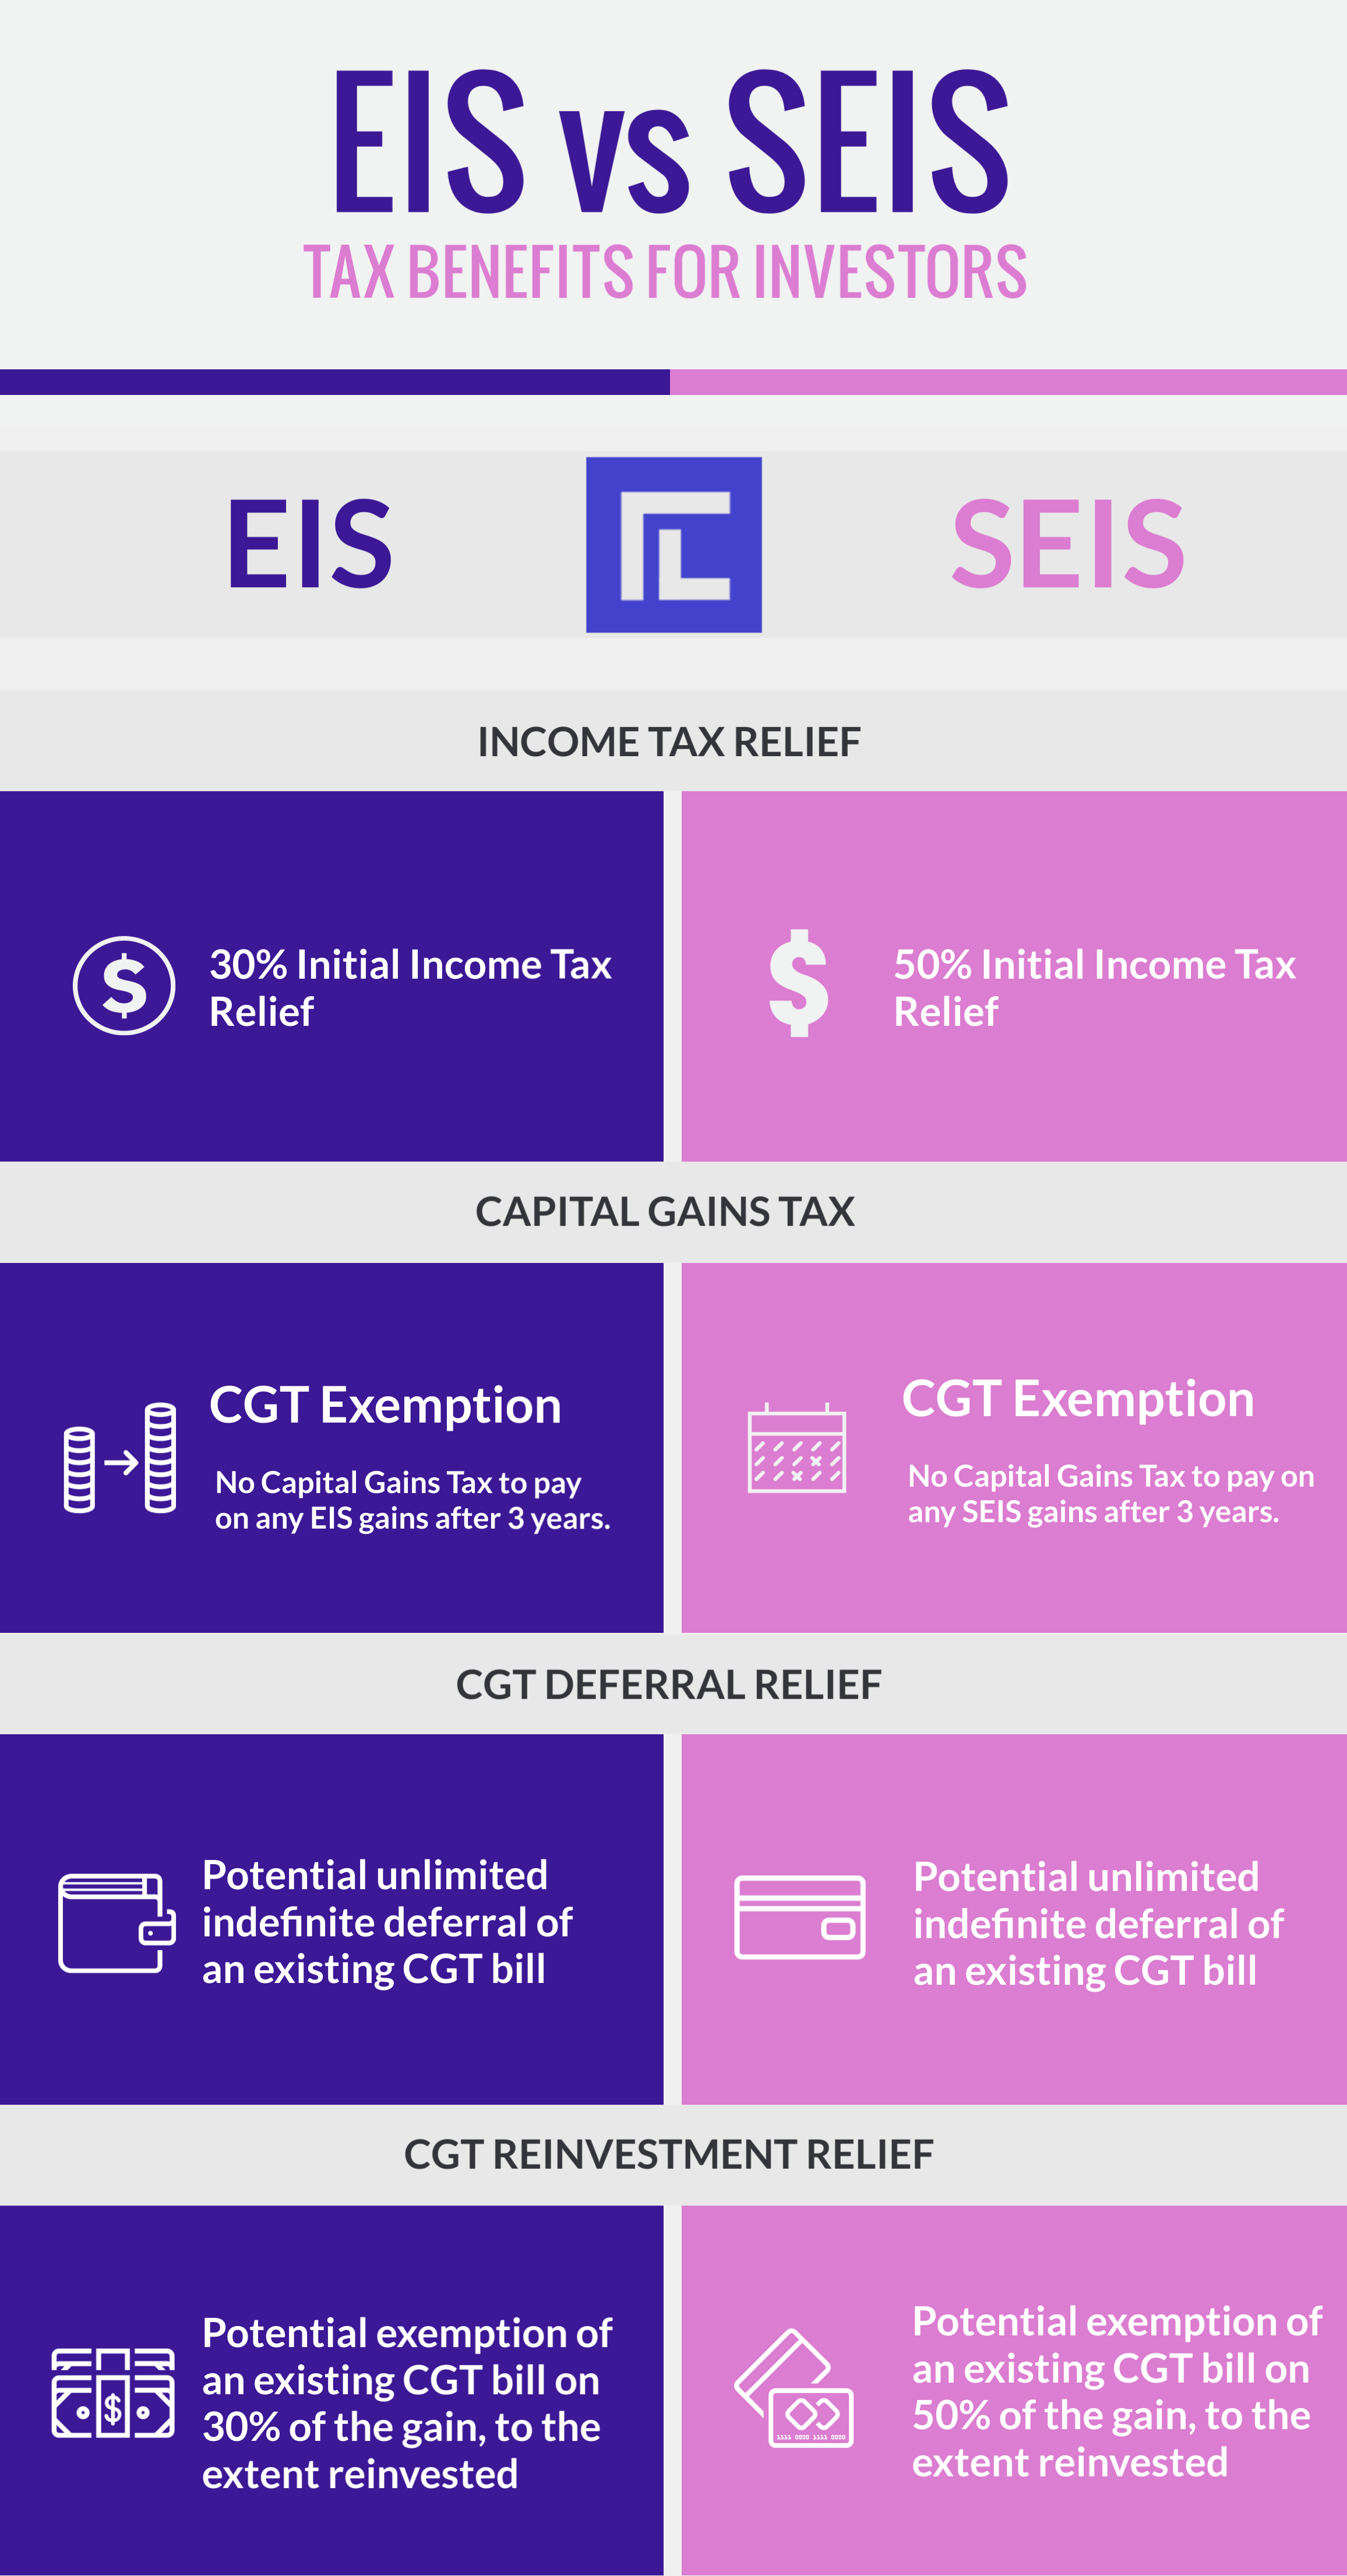 Comparing Benefits of the EIS and SEIS Scheme for Investors